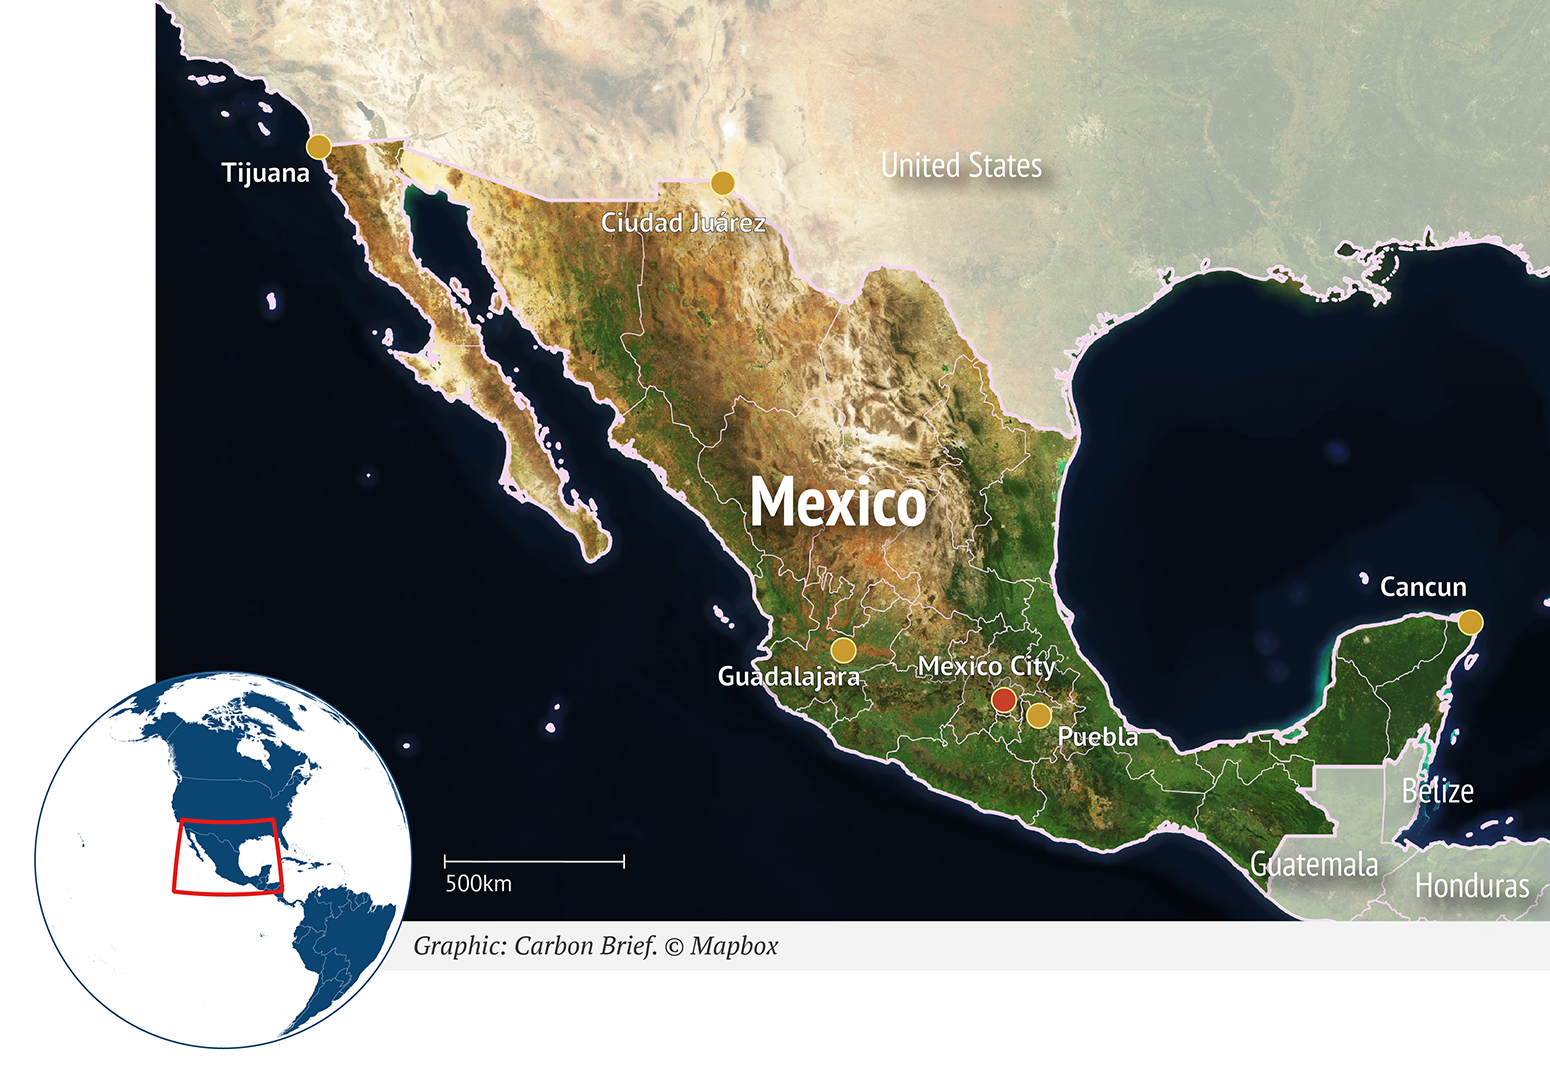 Mexico location on world map